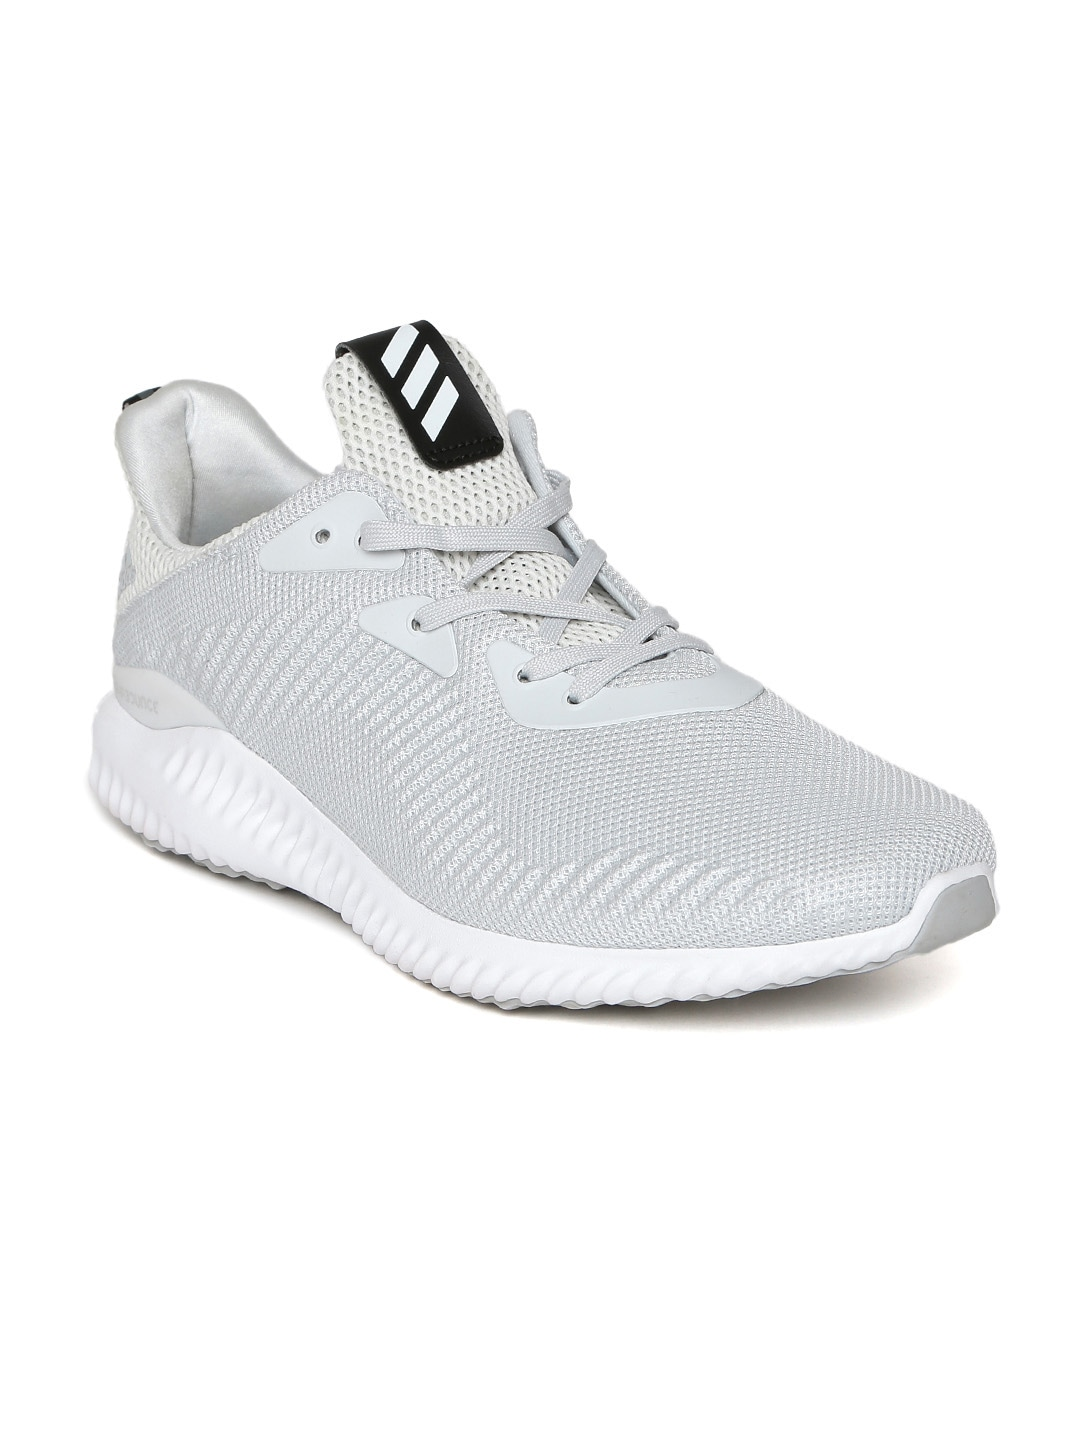 quality design b473a 816cf sale adidas mens alphabounce rc running shoe shoe fffbb 9e029  inexpensive  adidas men alphabounce running shoes price in india a8511 49ddd